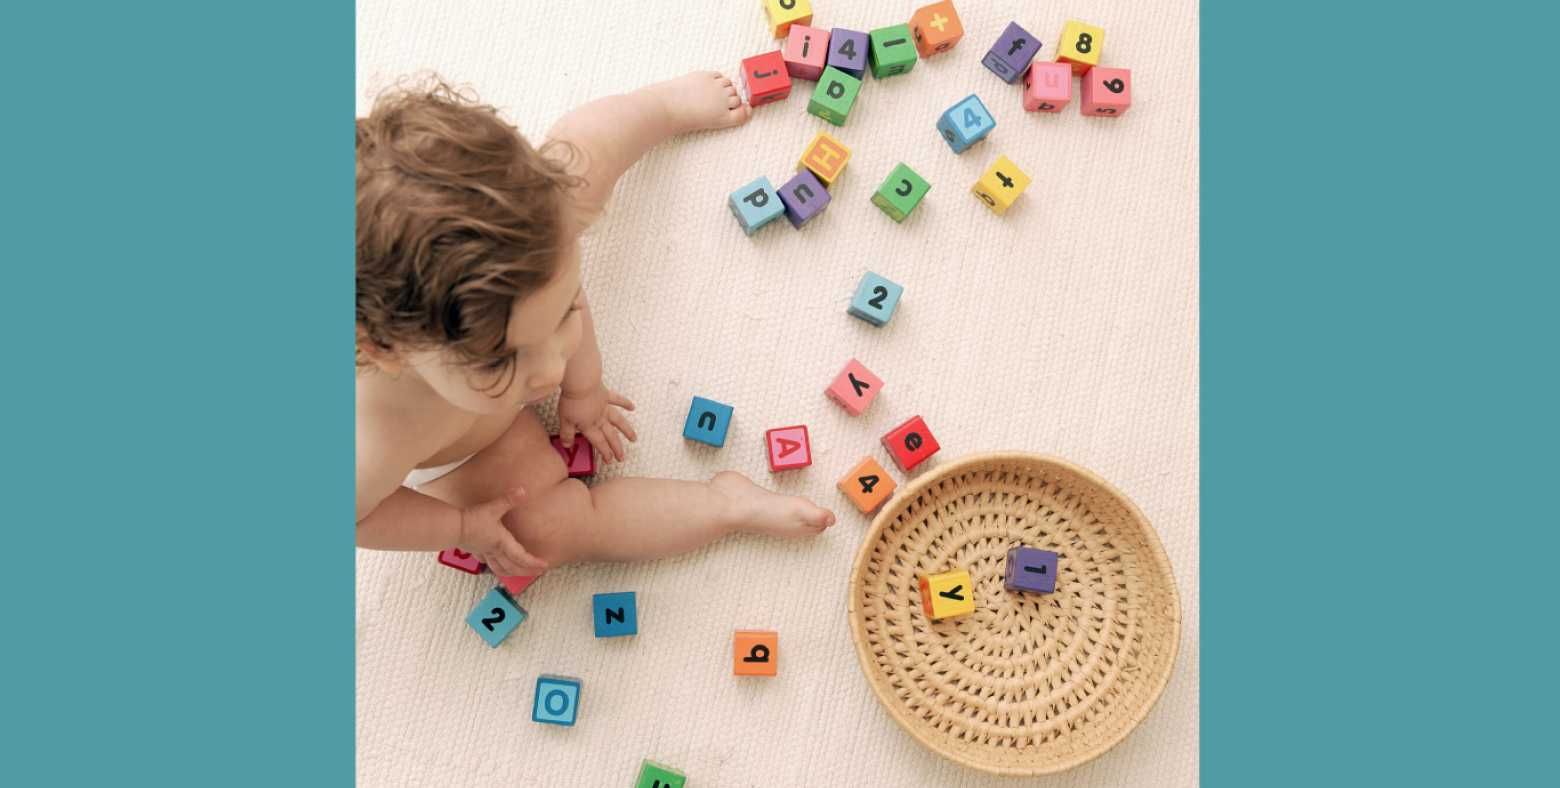 aerial view of toddler playing with toy letter and number blocks